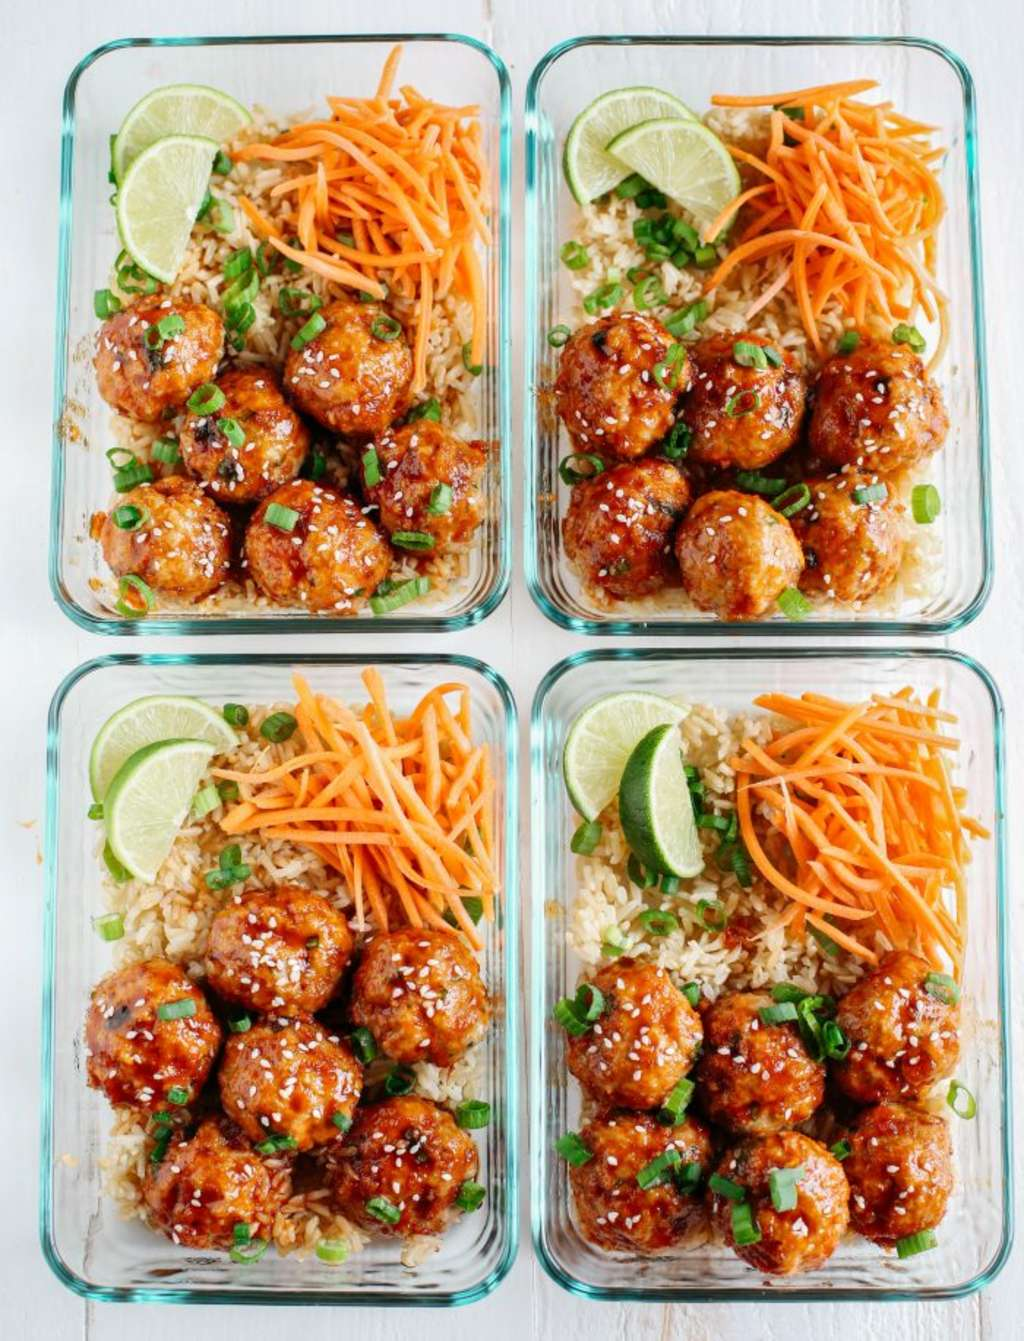 These Honey-Sriracha Meatballs Make Meal Prep Easy